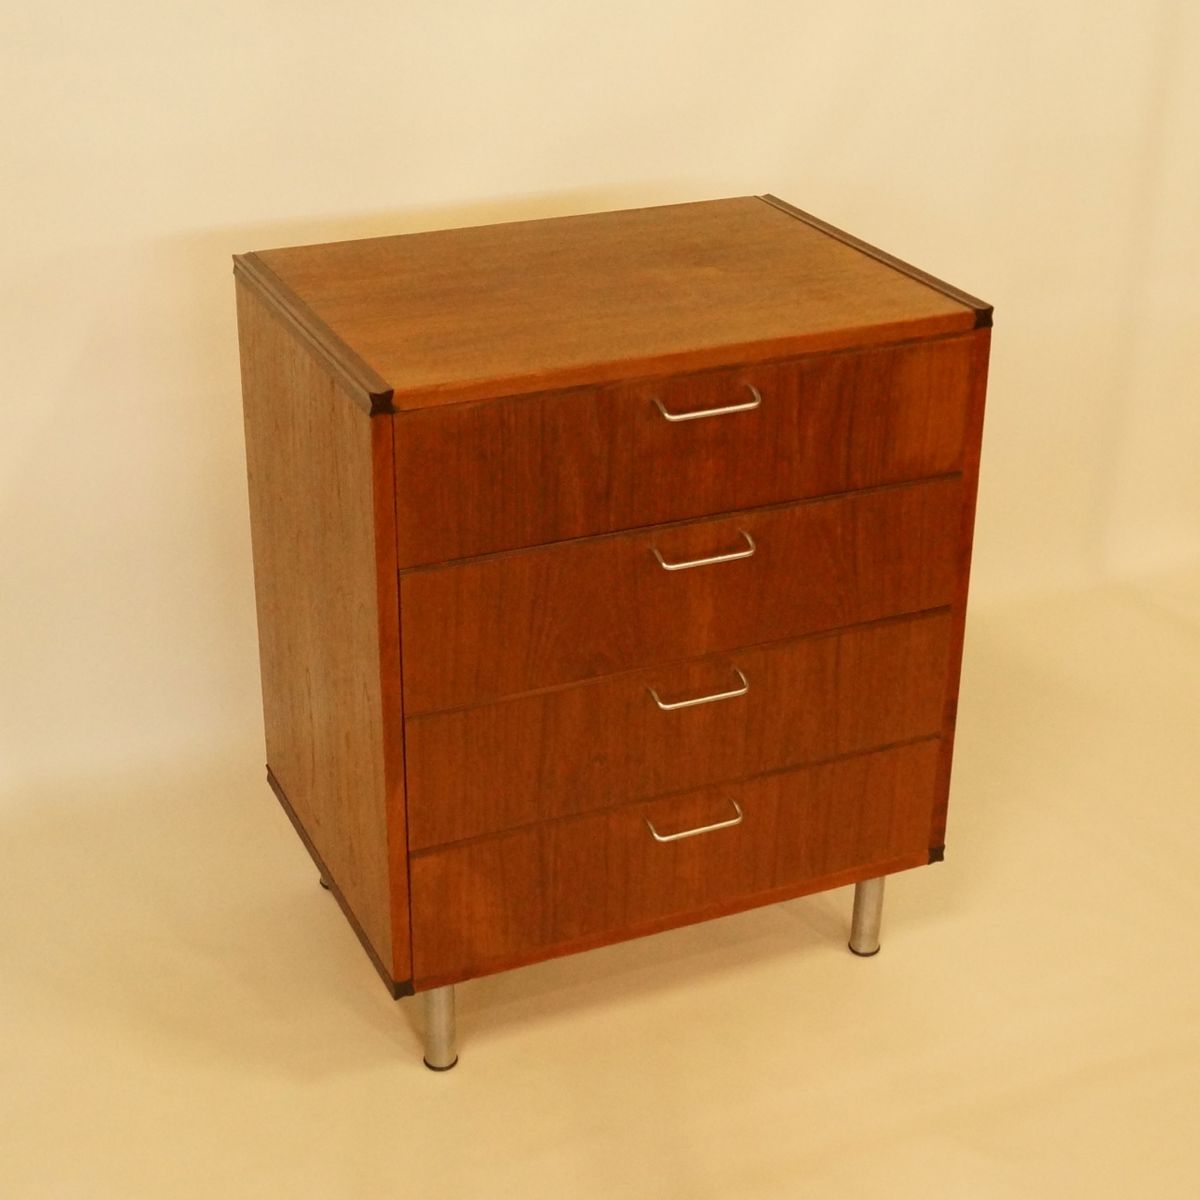 Teak Drawer Cabinet By Cees Braakman For Pastoe 1950s For Sale At Pamono